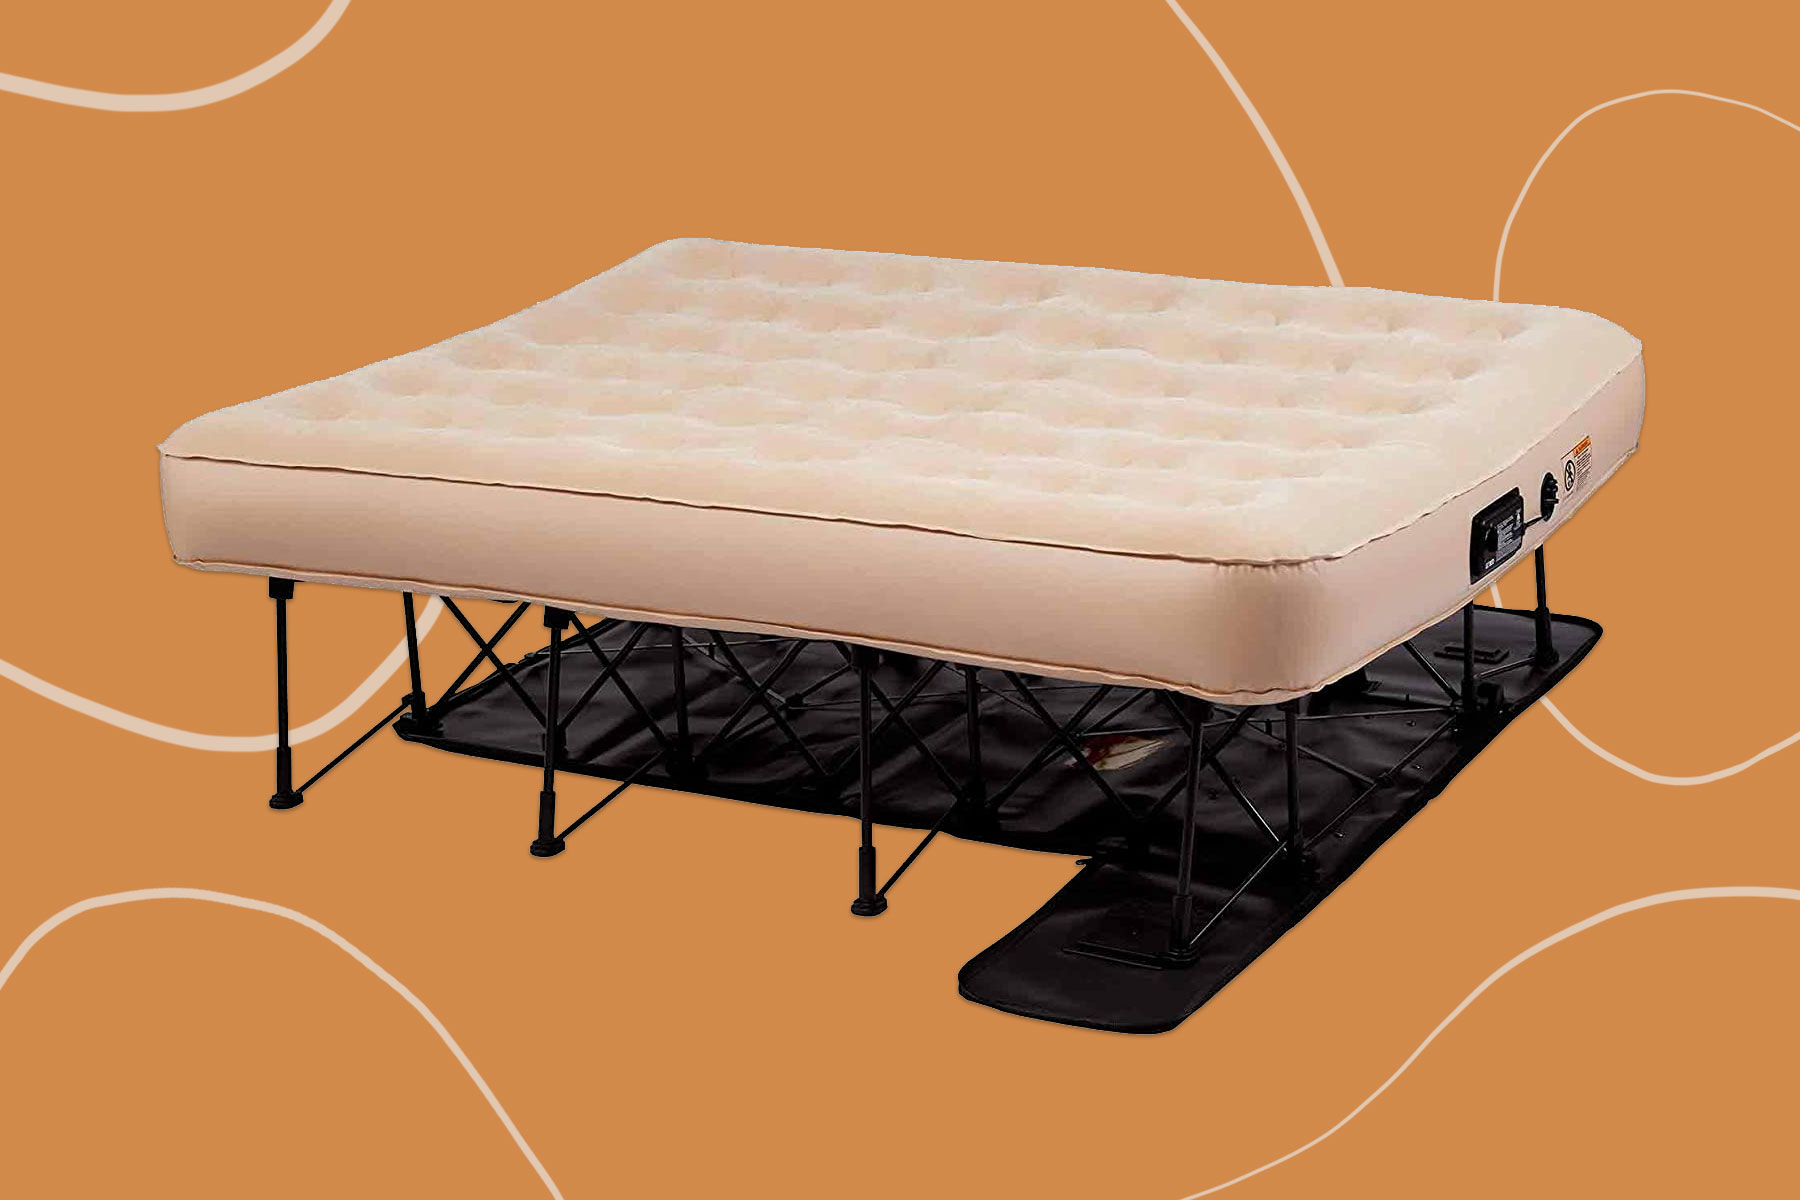 Tan self inflating air mattress with bed frame